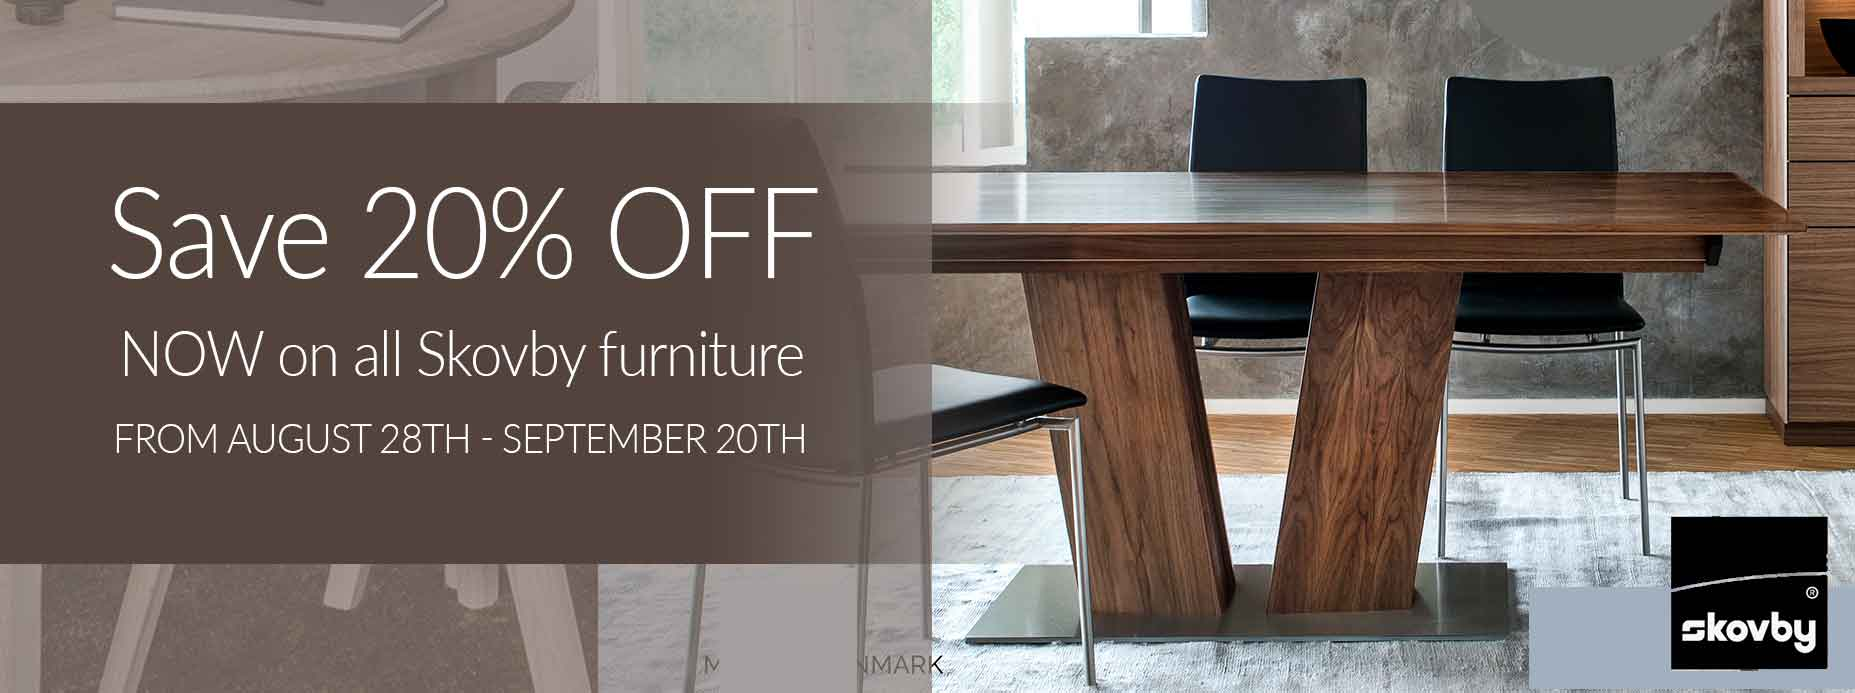 Save 20% off on Skovby Furniture